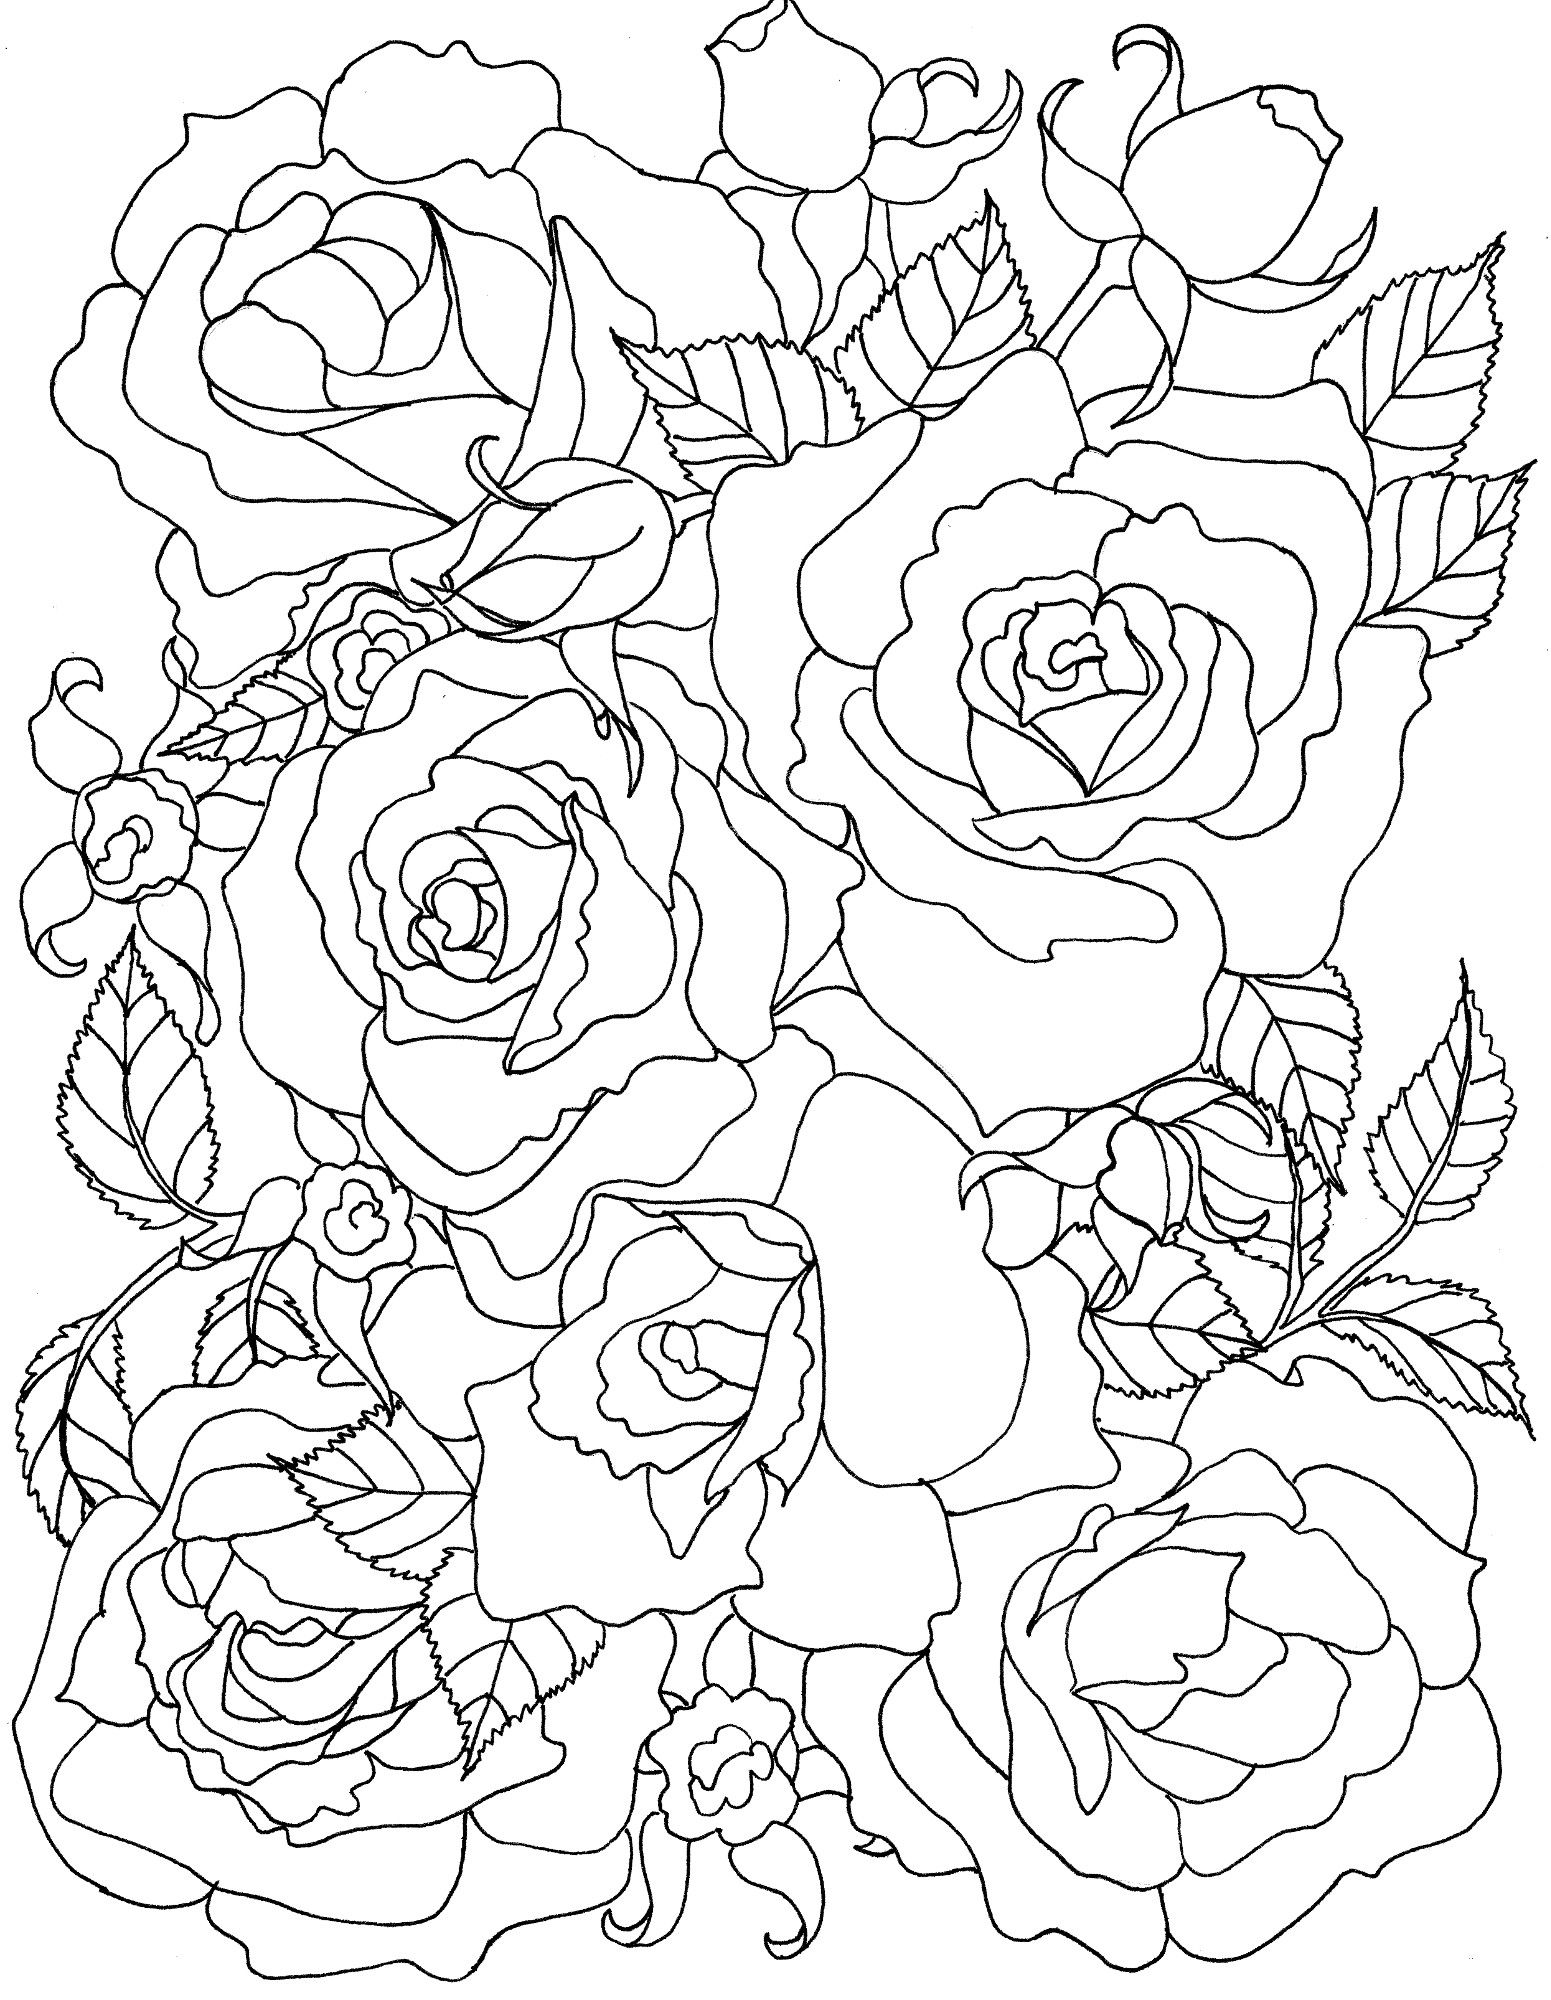 happy family art original and fun coloring pages flowers to